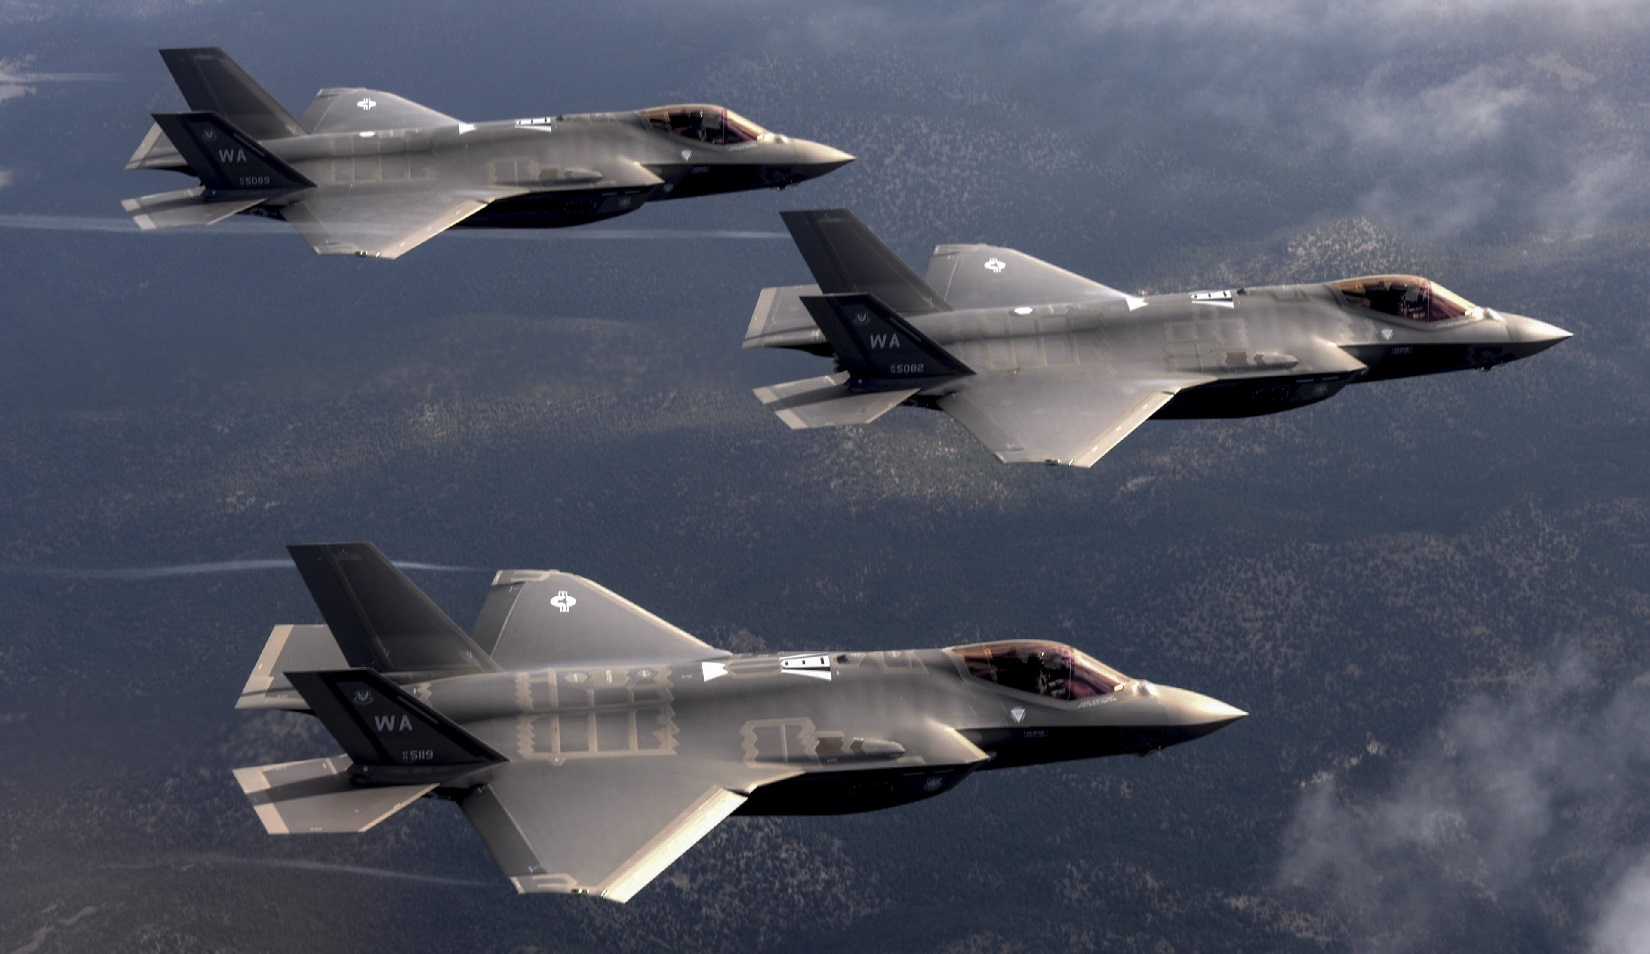 F-35s vs. the World: Who Will Win Canada's Big Fighter Jet Deal?